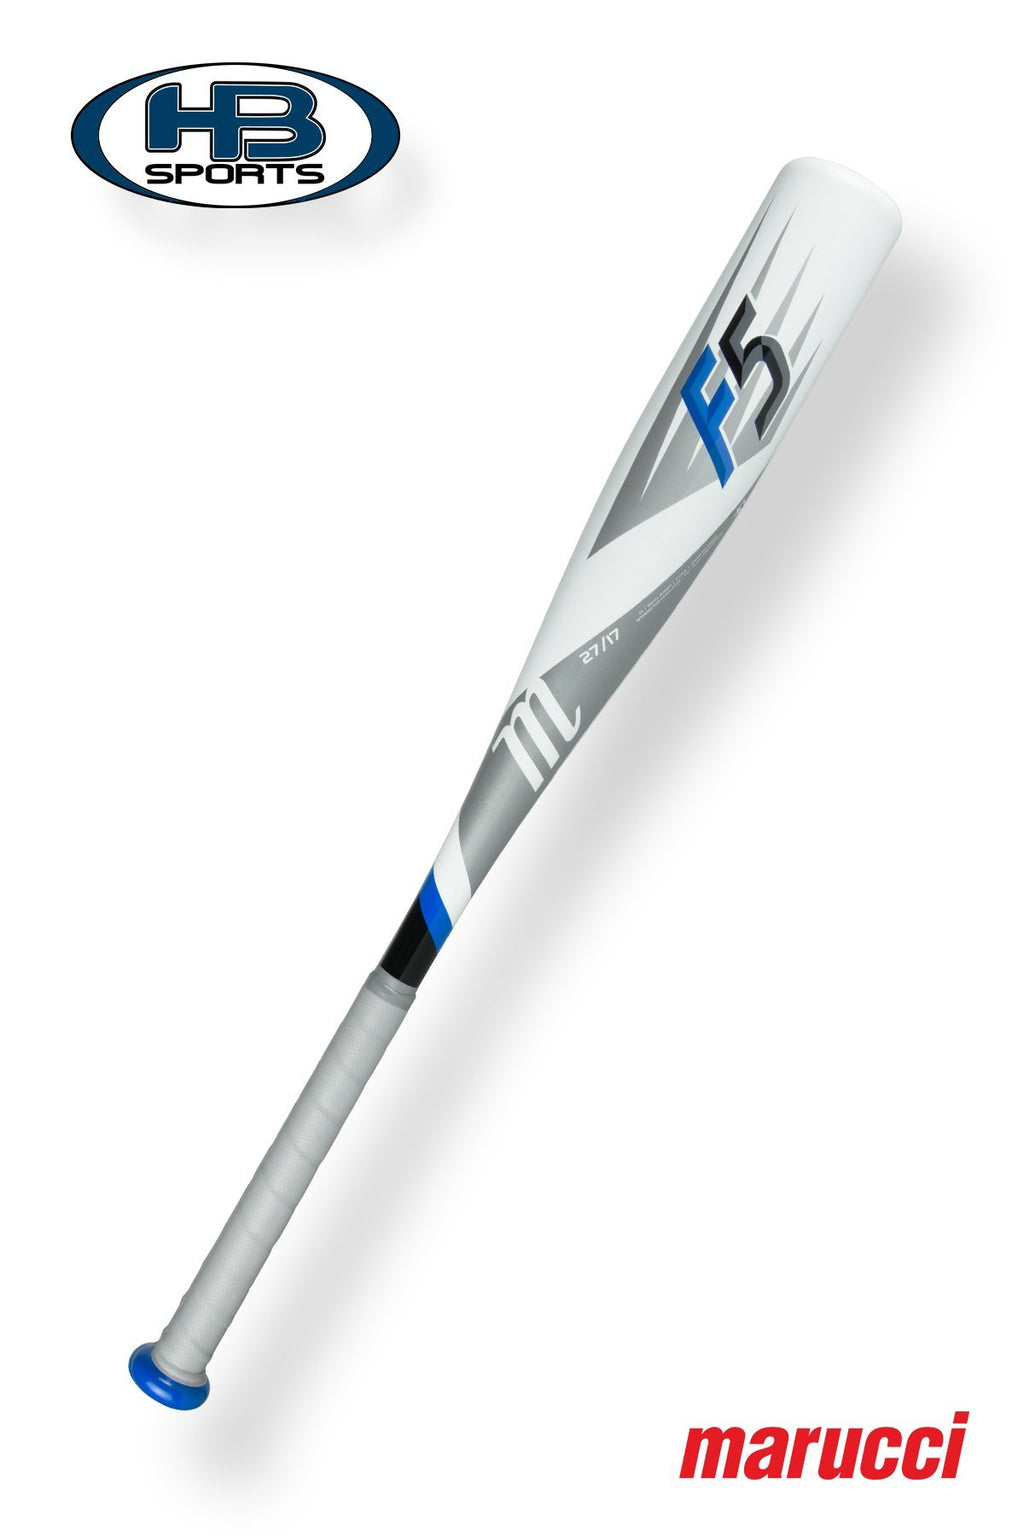 "2018 Marucci F5 (-10) 2 3/4"" Junior Big Barrel Baseball Bat: MJBBF5 at headbangersports.com"